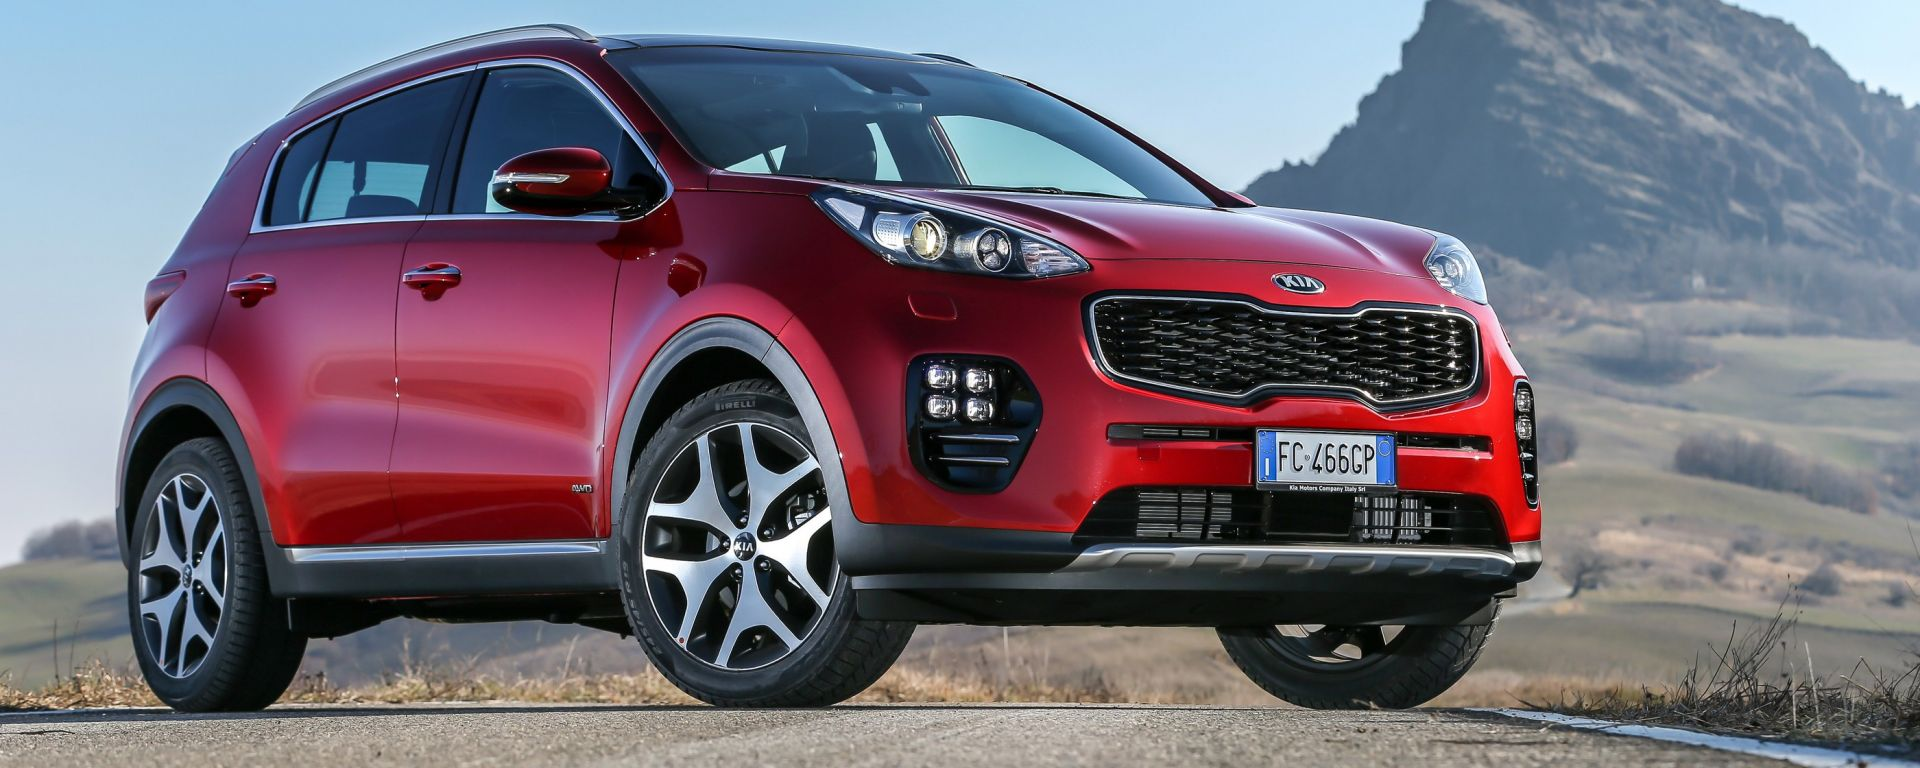 Kia batte le tedesche per qualità secondo la classifica JD Power